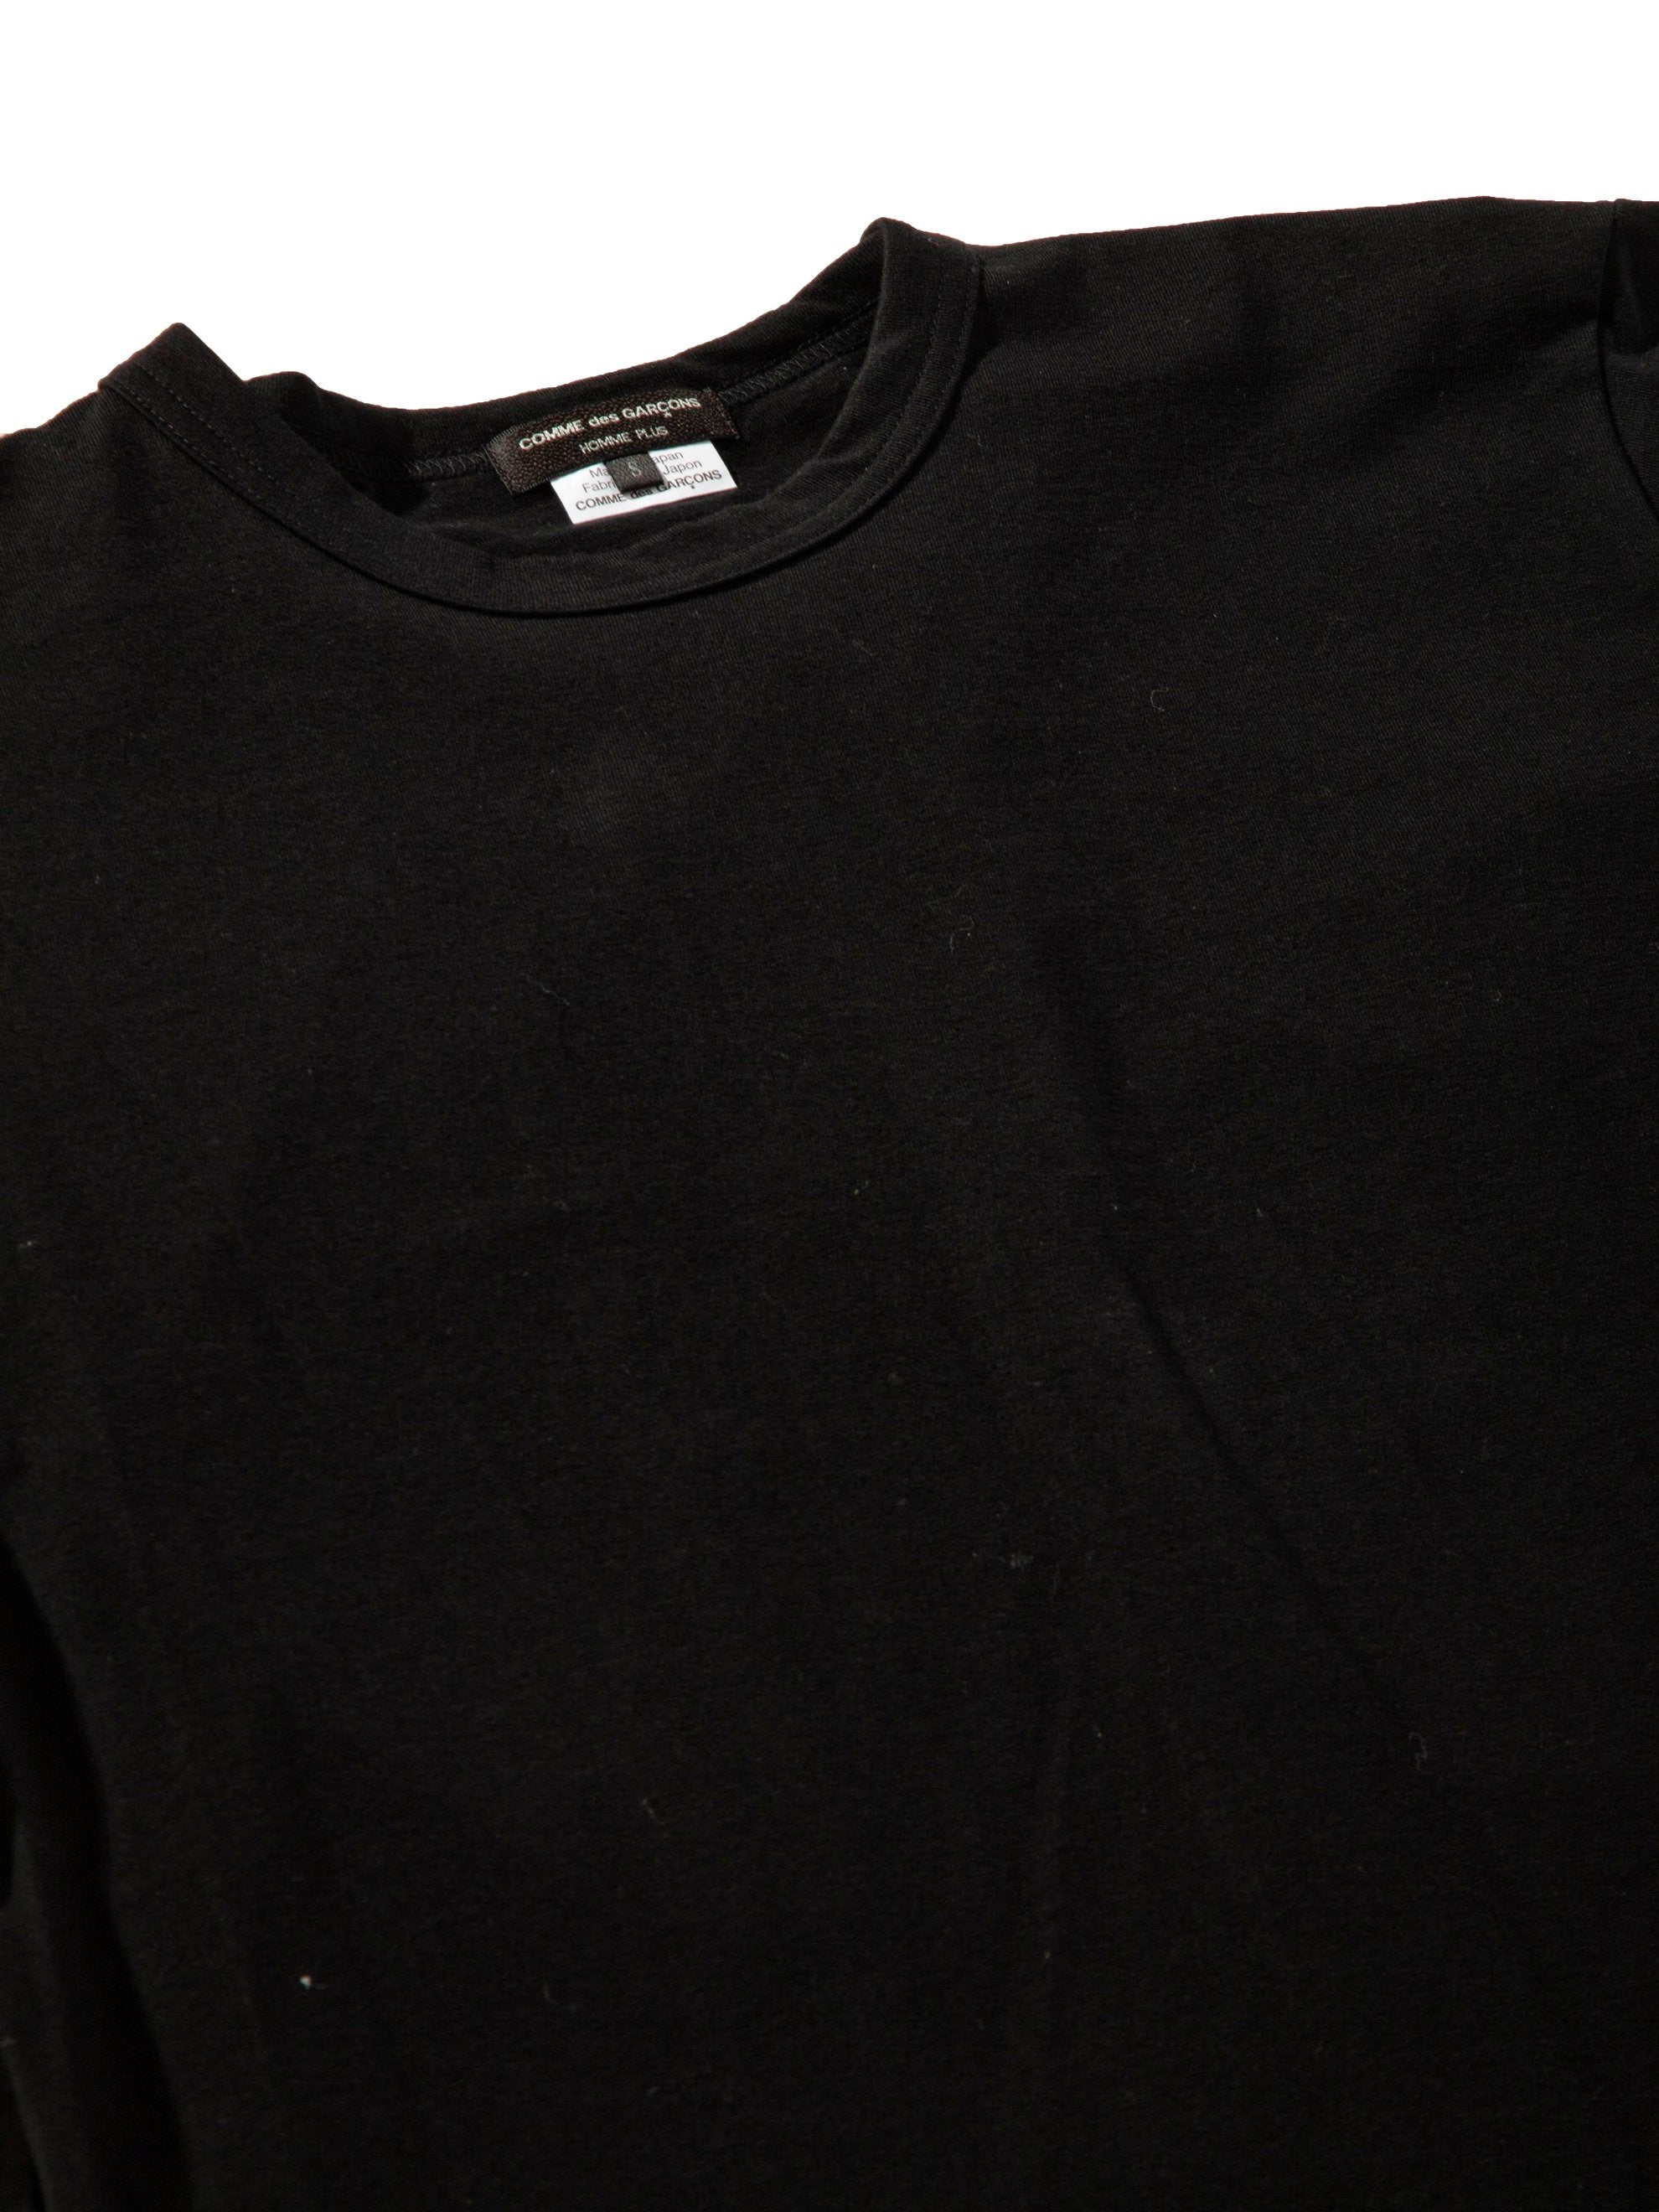 Black Slit Back Buckle T-Shirt 5